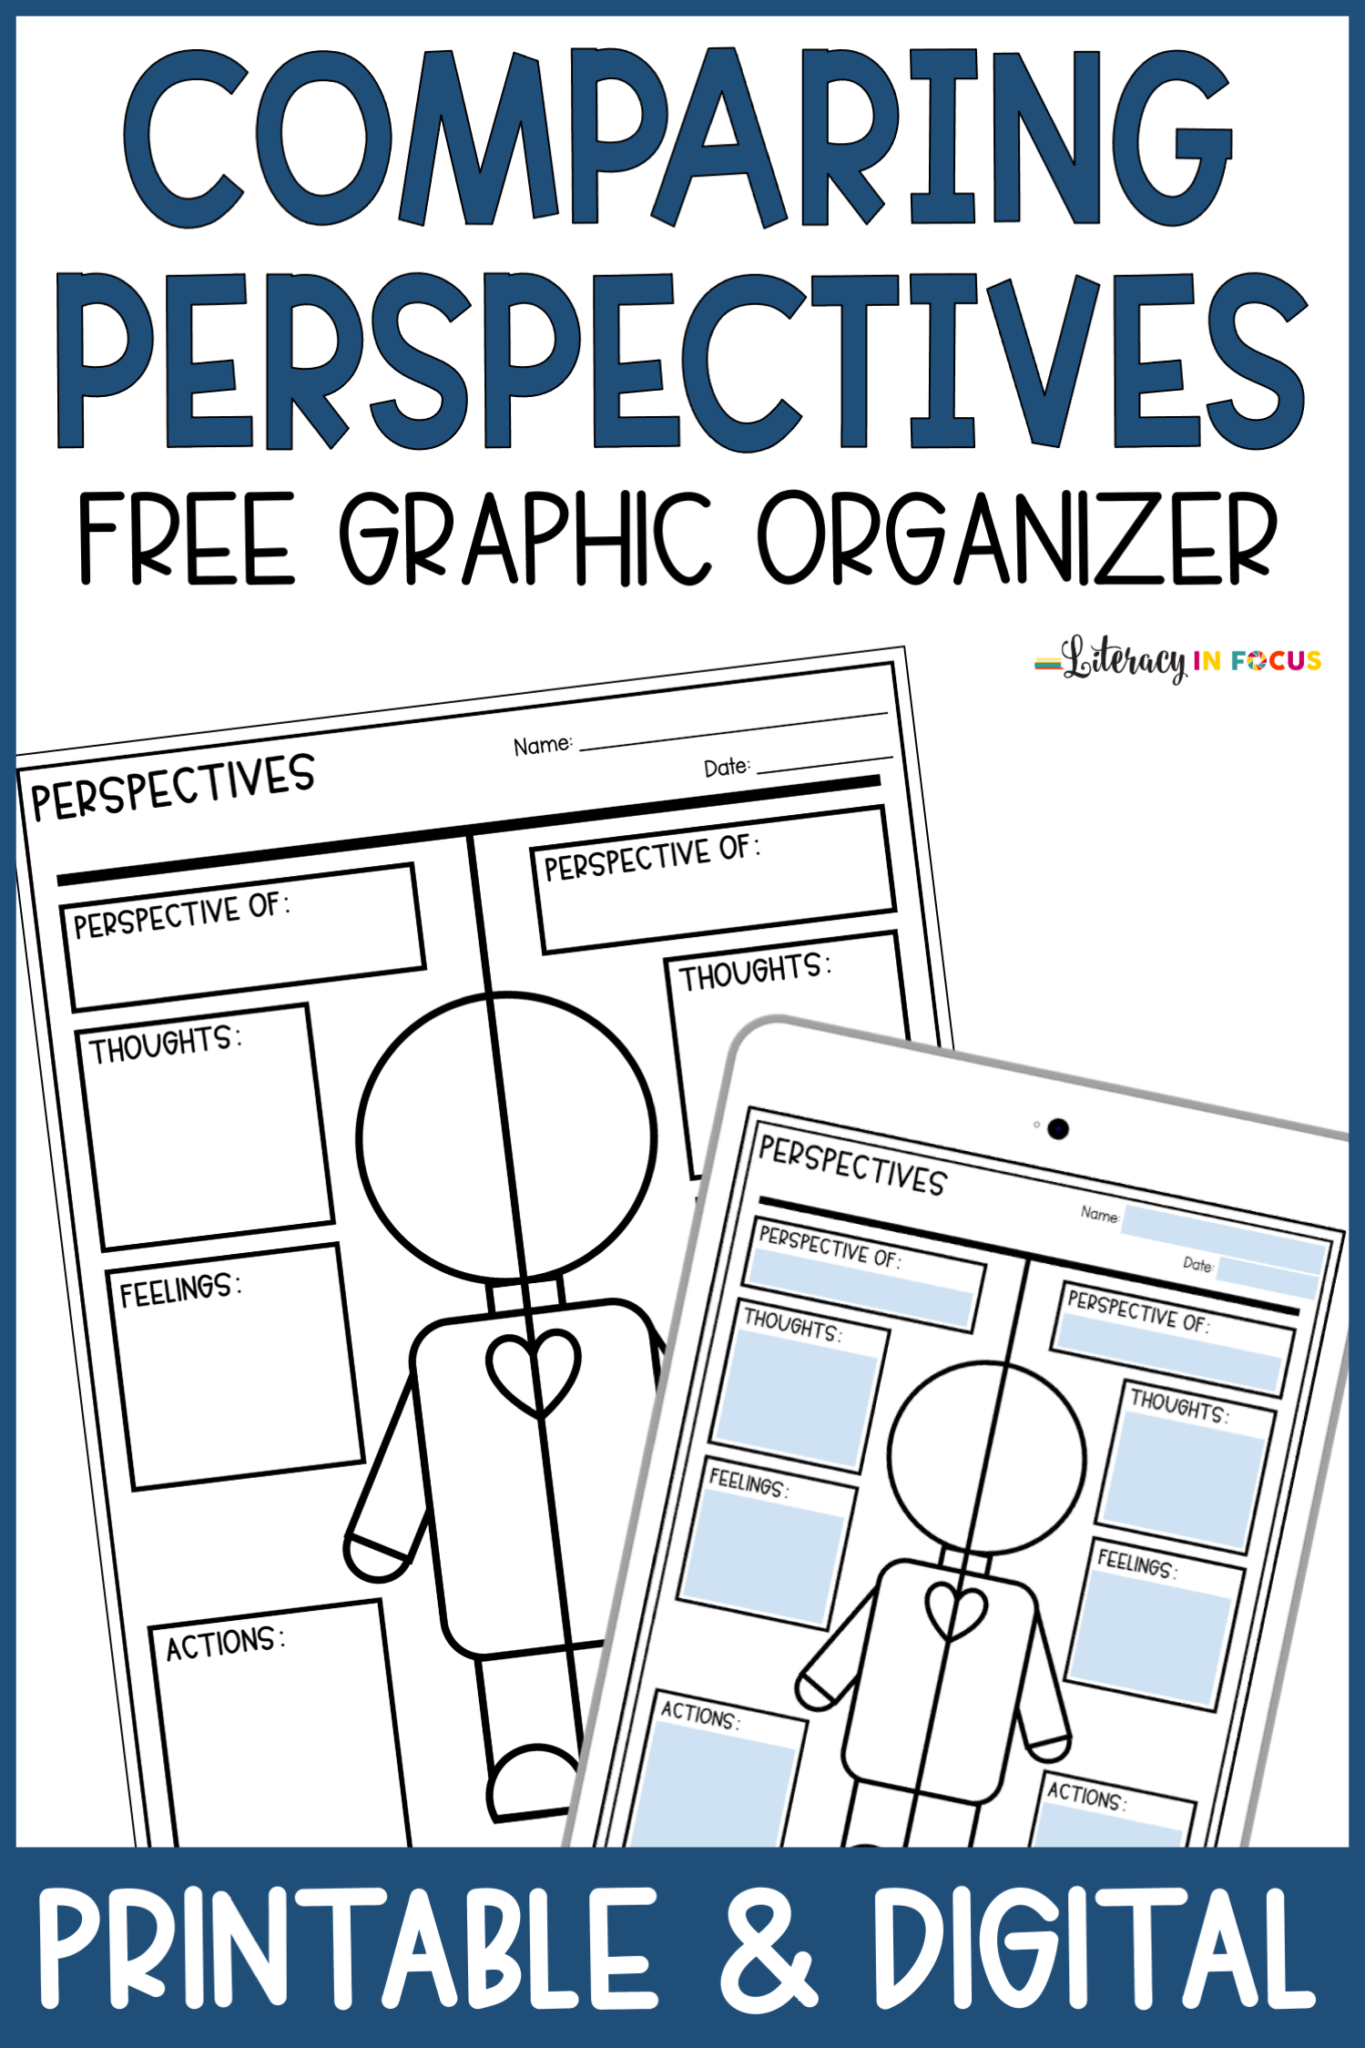 Free Printable and Digital Comparing Perspectives Graphic Organizer